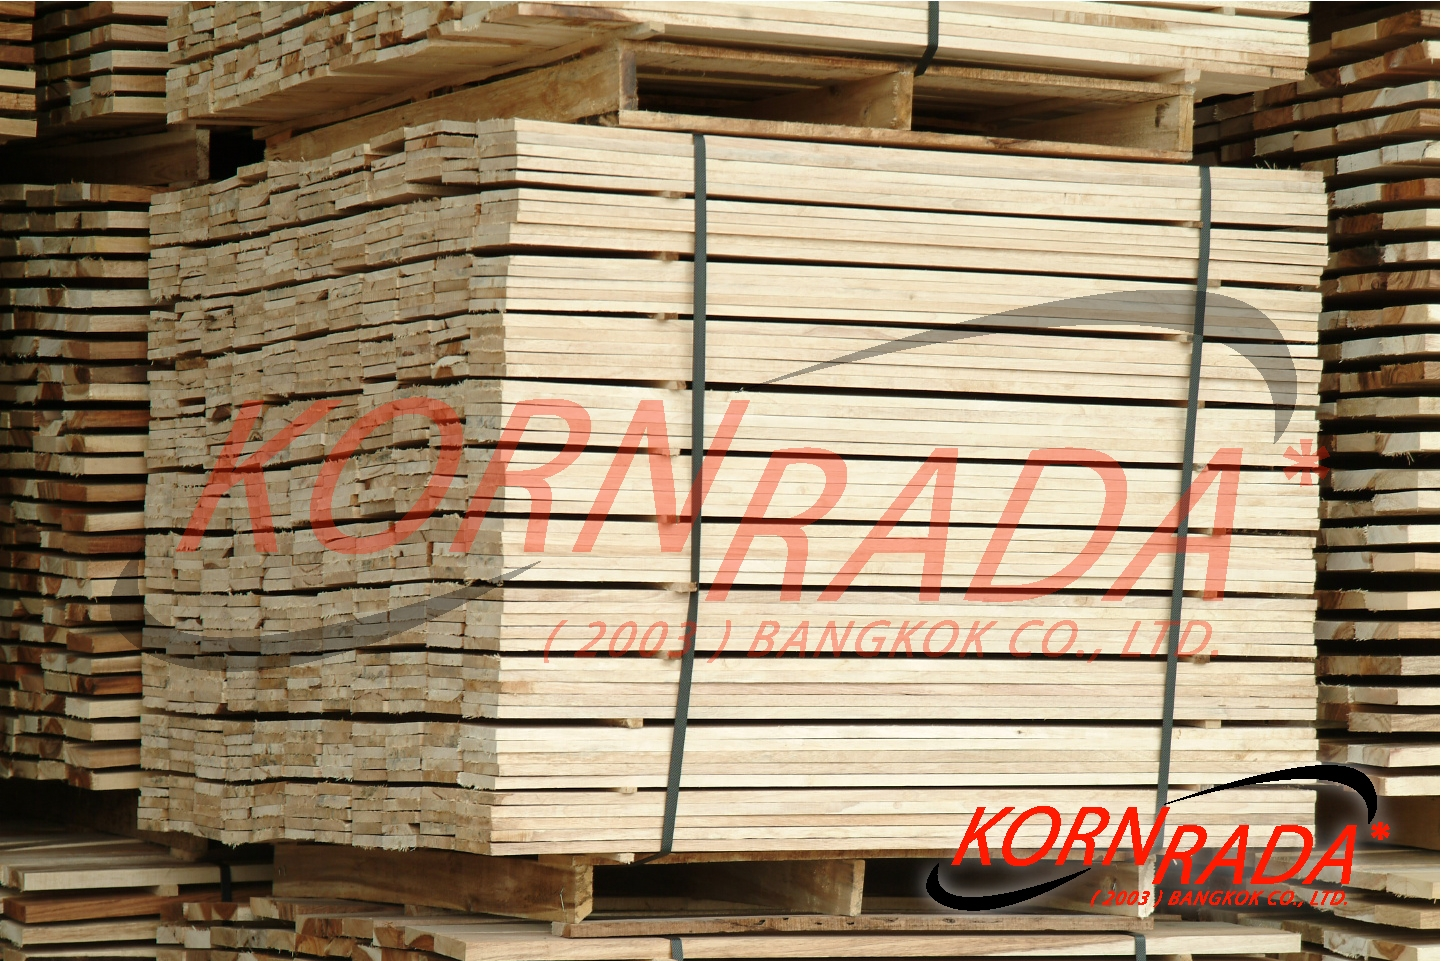 kornrada_products_1408